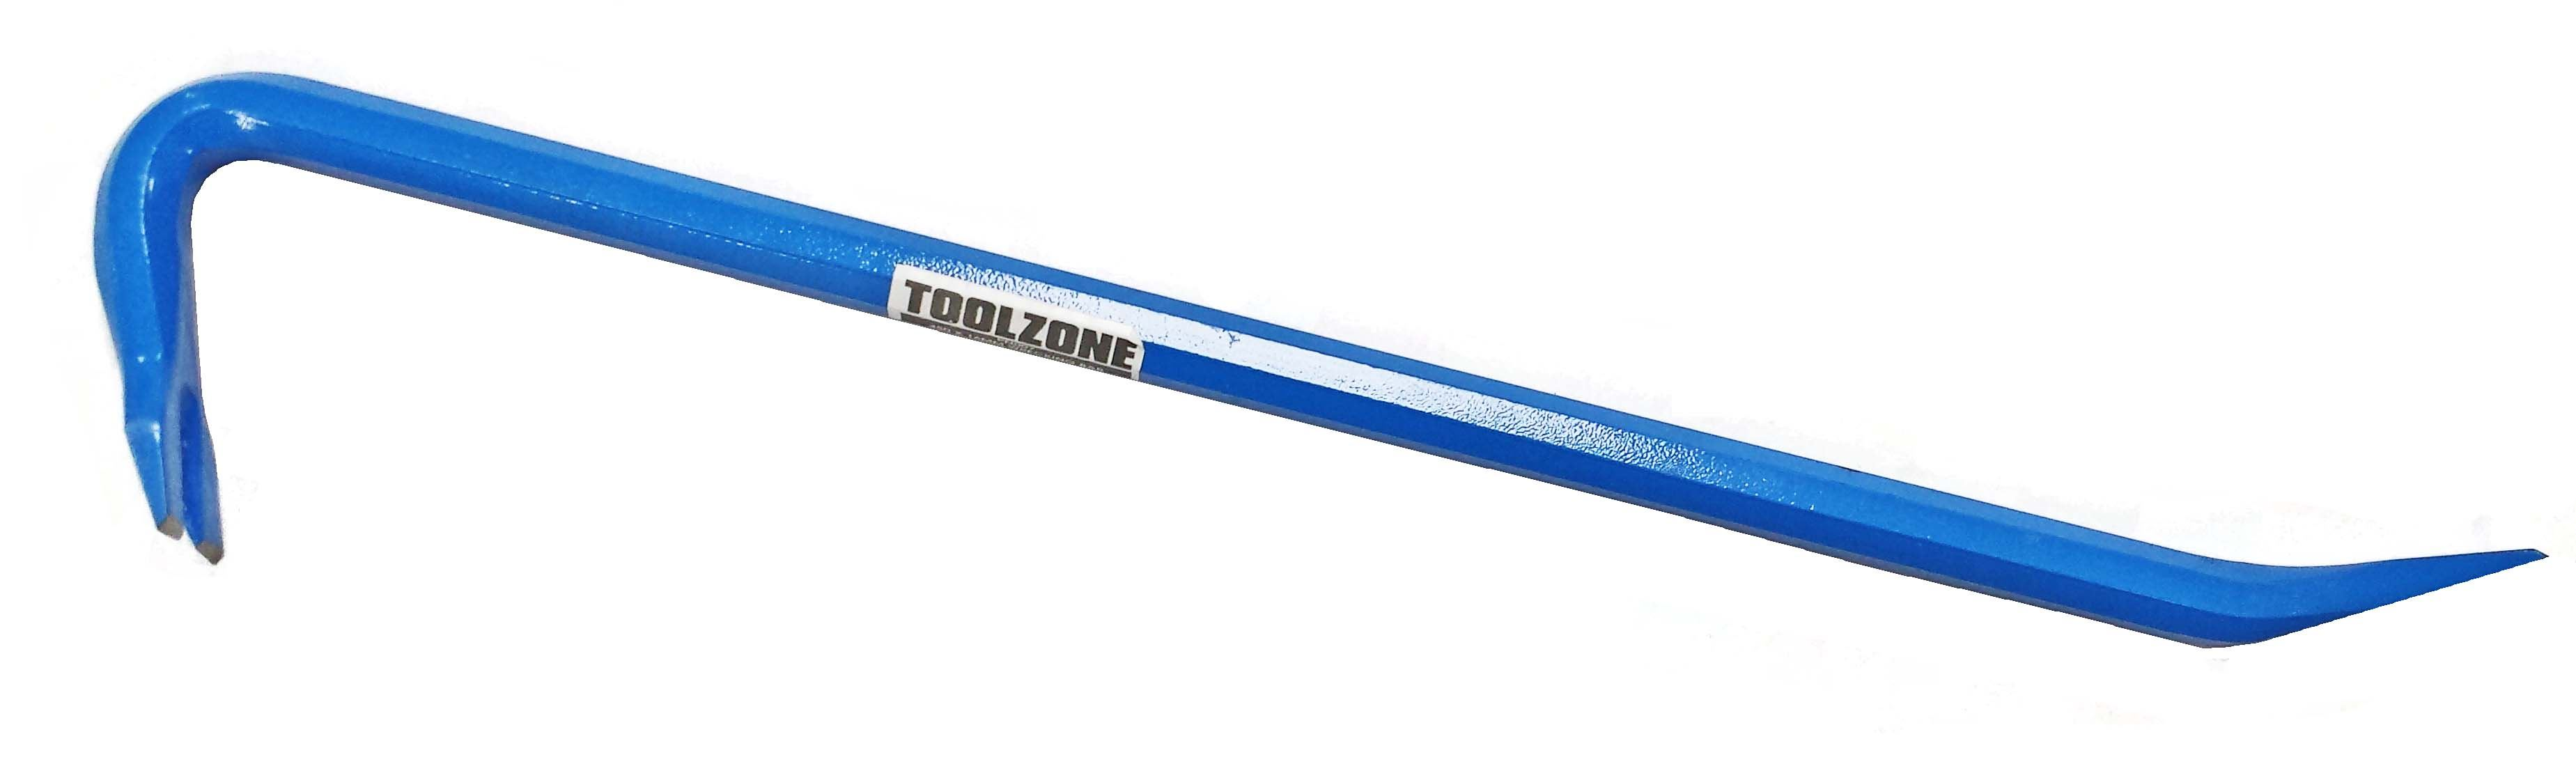 Toolzone 450 X 16Mm High Quality Wrecking Bar